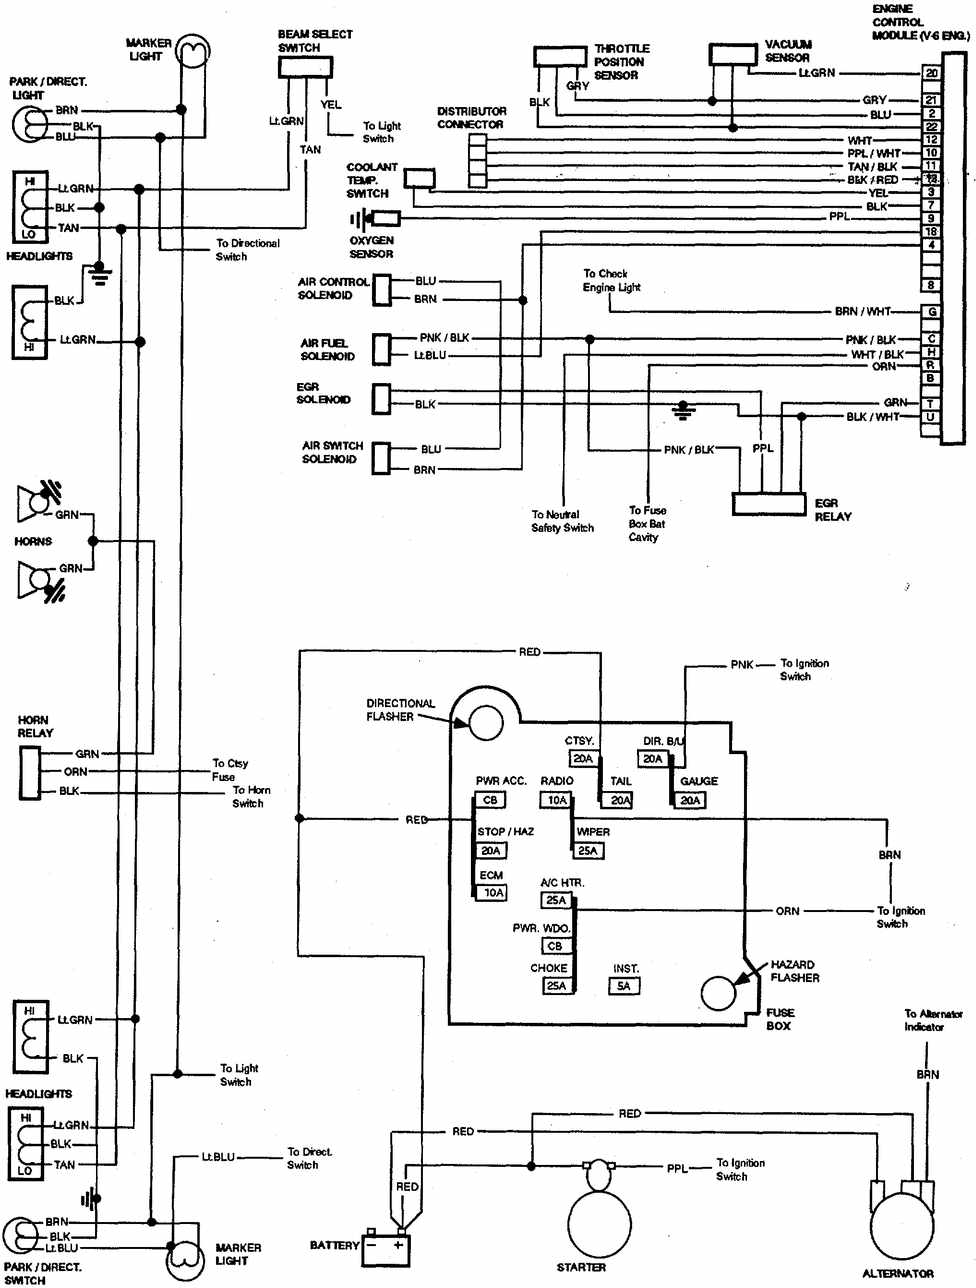 1976 mustang wiring diagram all image about wiring diagram and